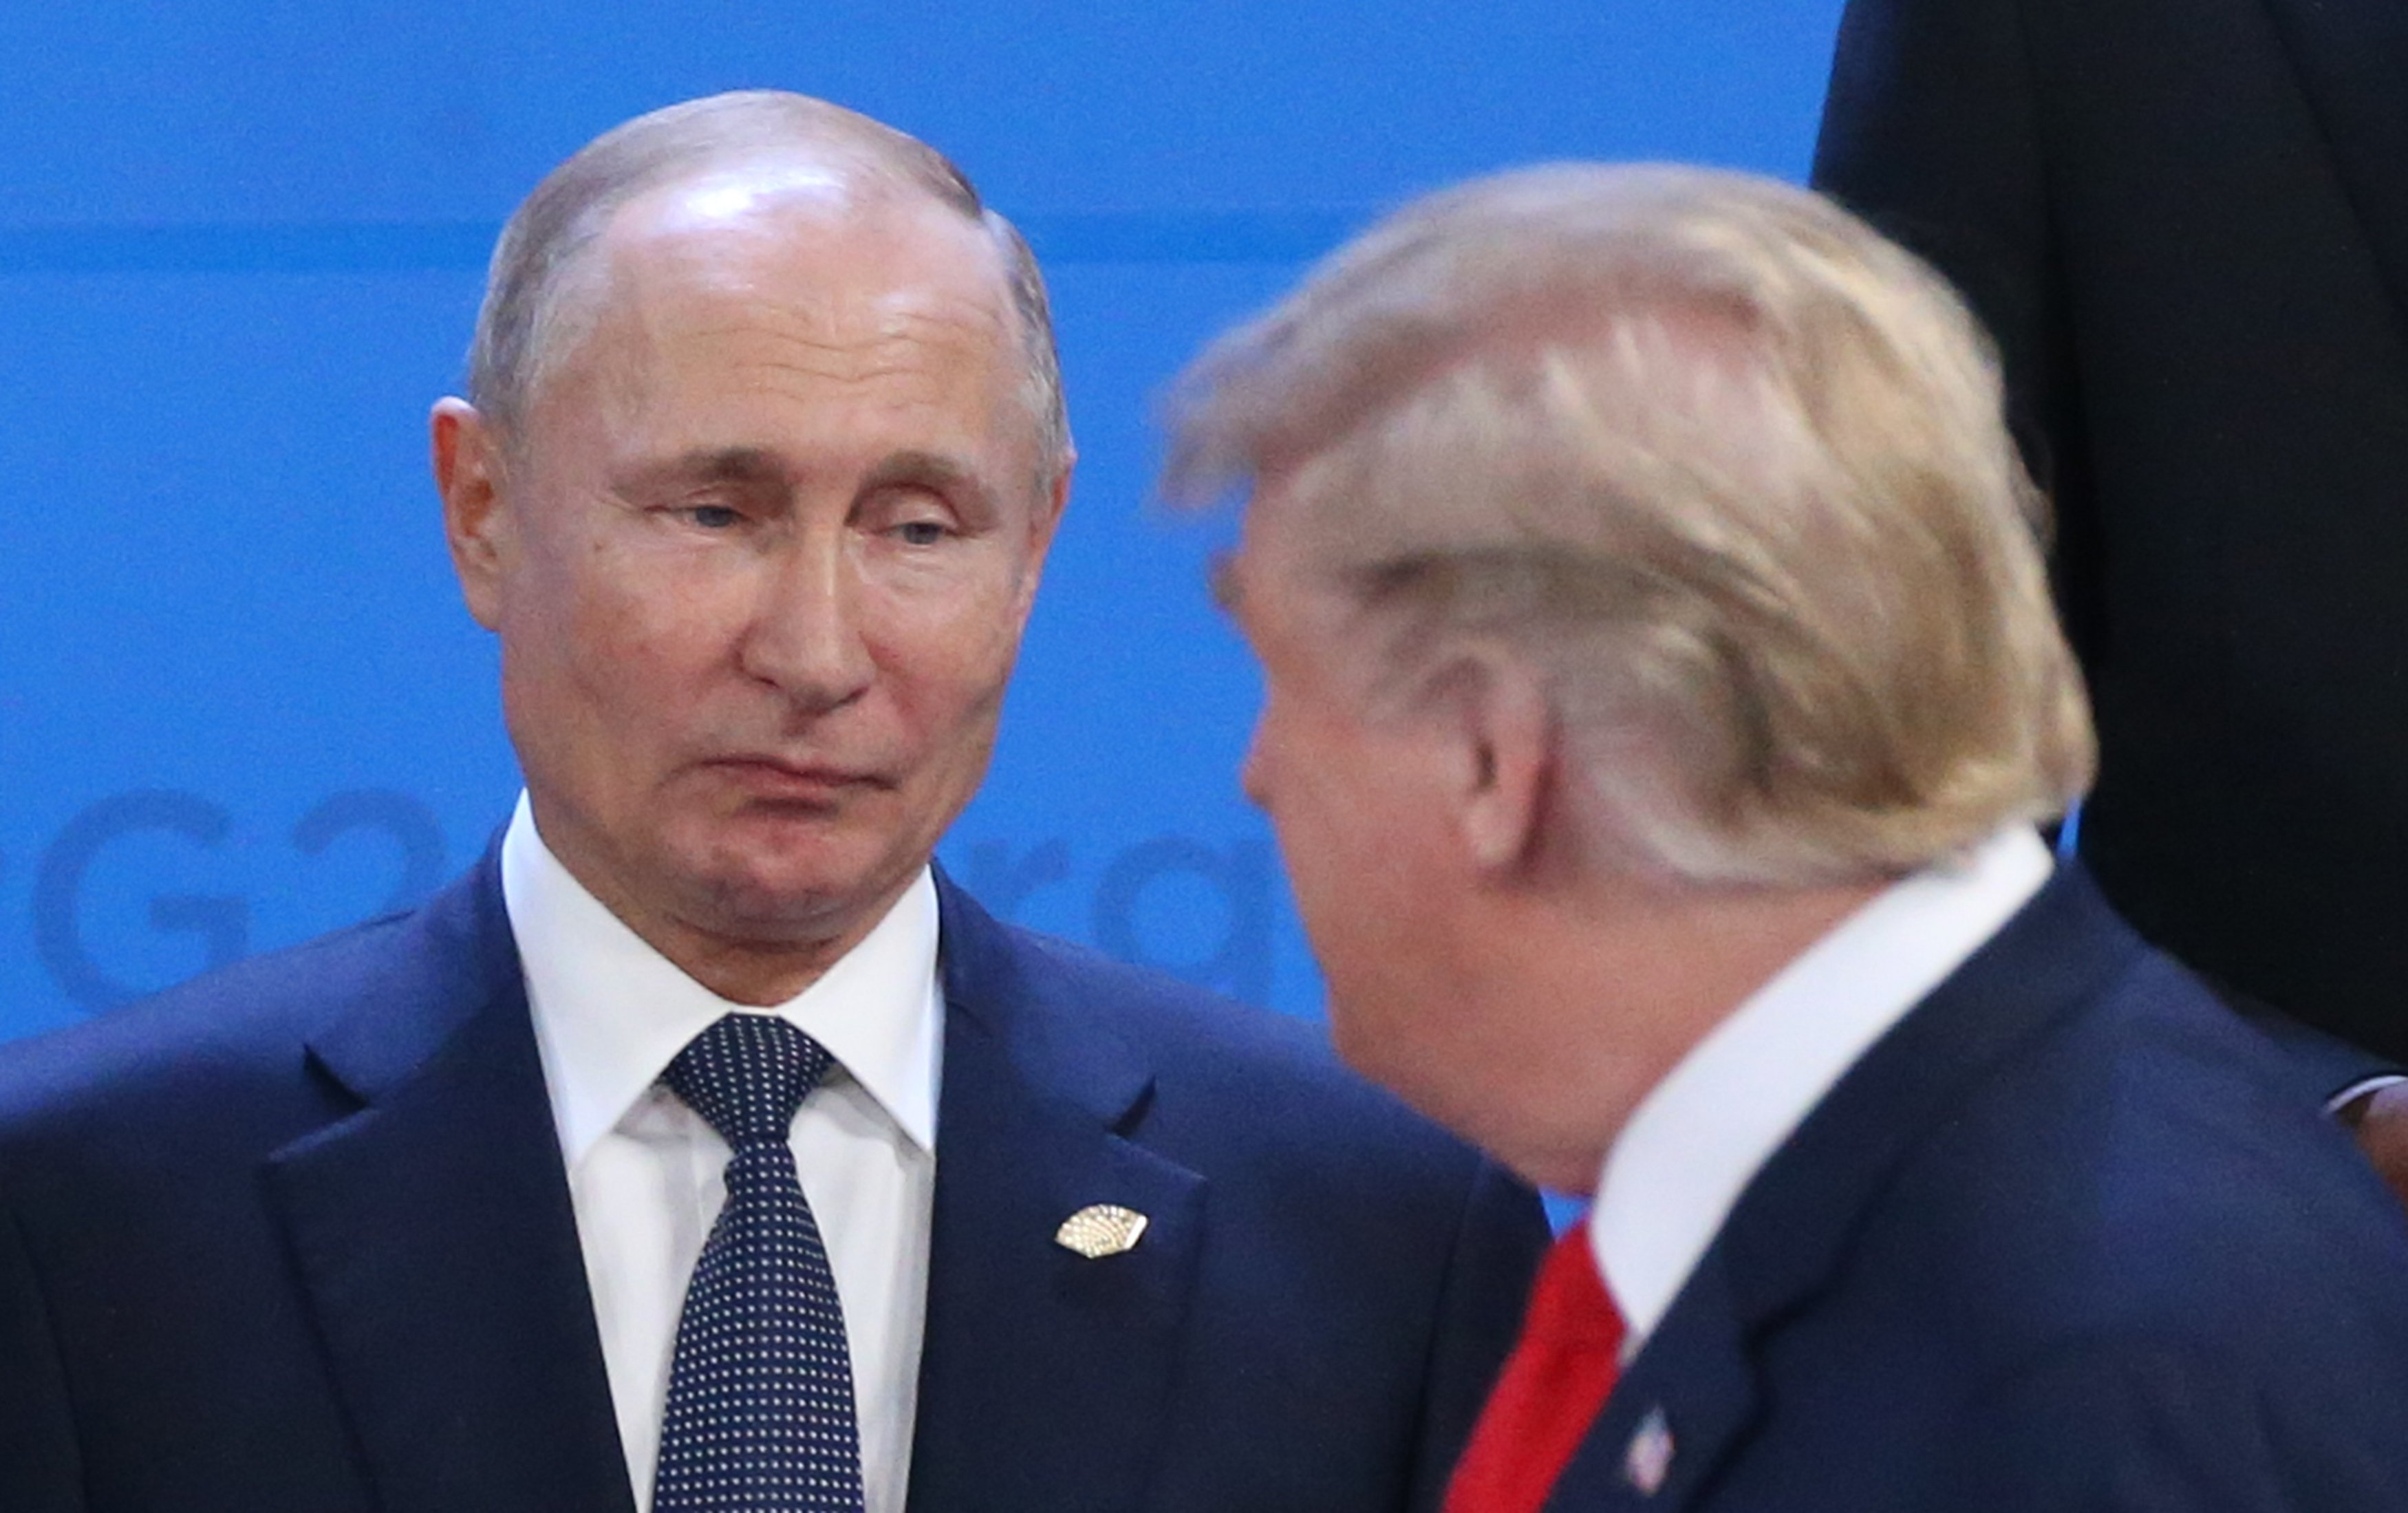 Russian President Vladimir Putin and U.S. President Donald Trump exchange looks during the opening ceremony of the G20 Summit's Plenary Meeting in Buenos Aires, Argentina   Photo: Getty Images